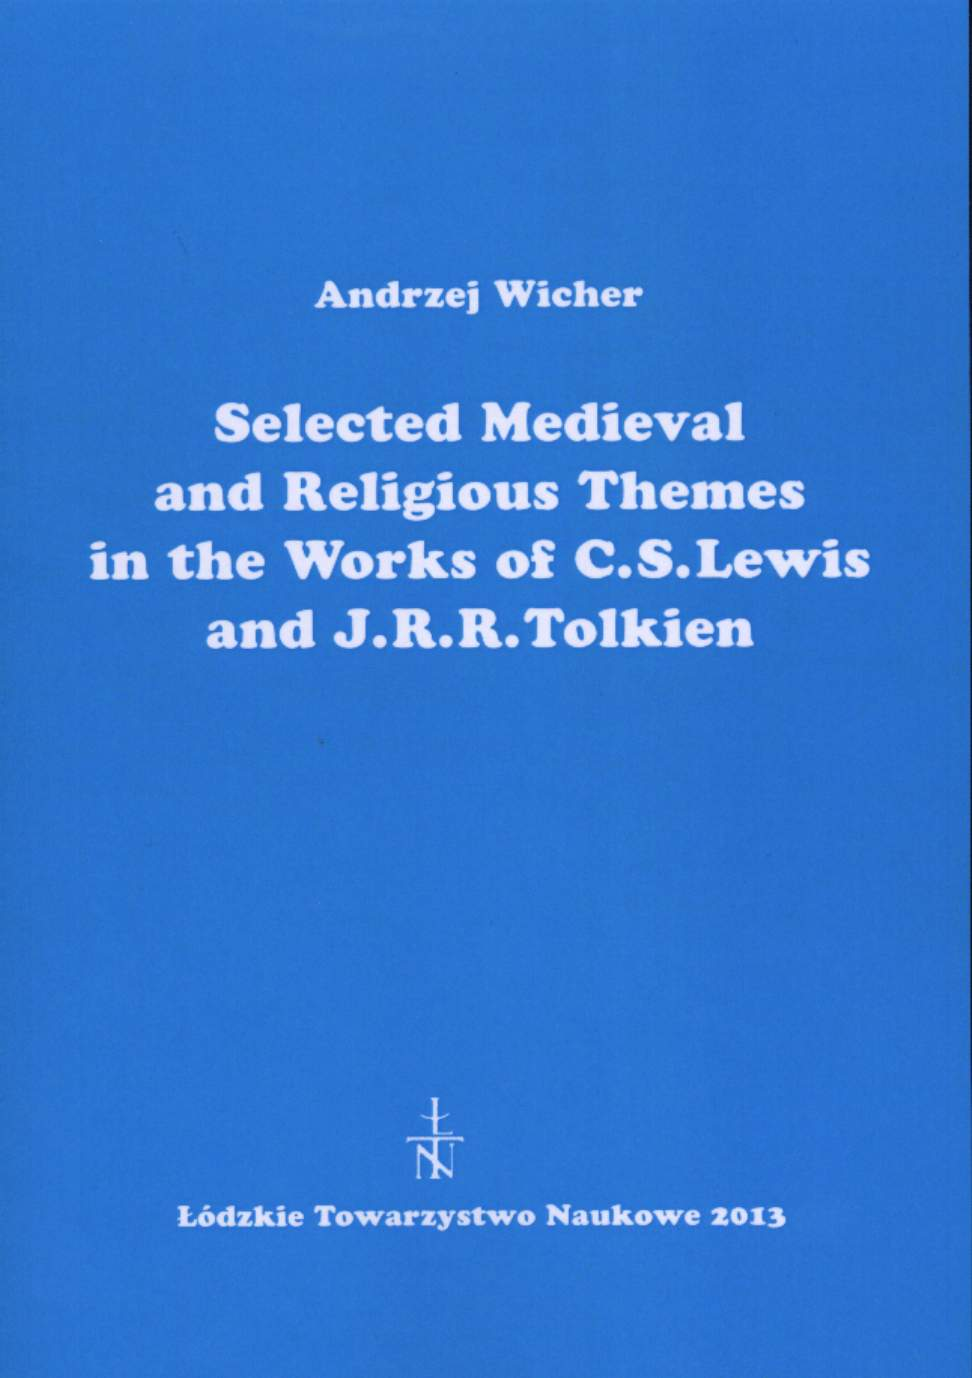 Selected Medieval and Religious Themes in the Works of C. S. Lewis and J. R. R. Tolkien